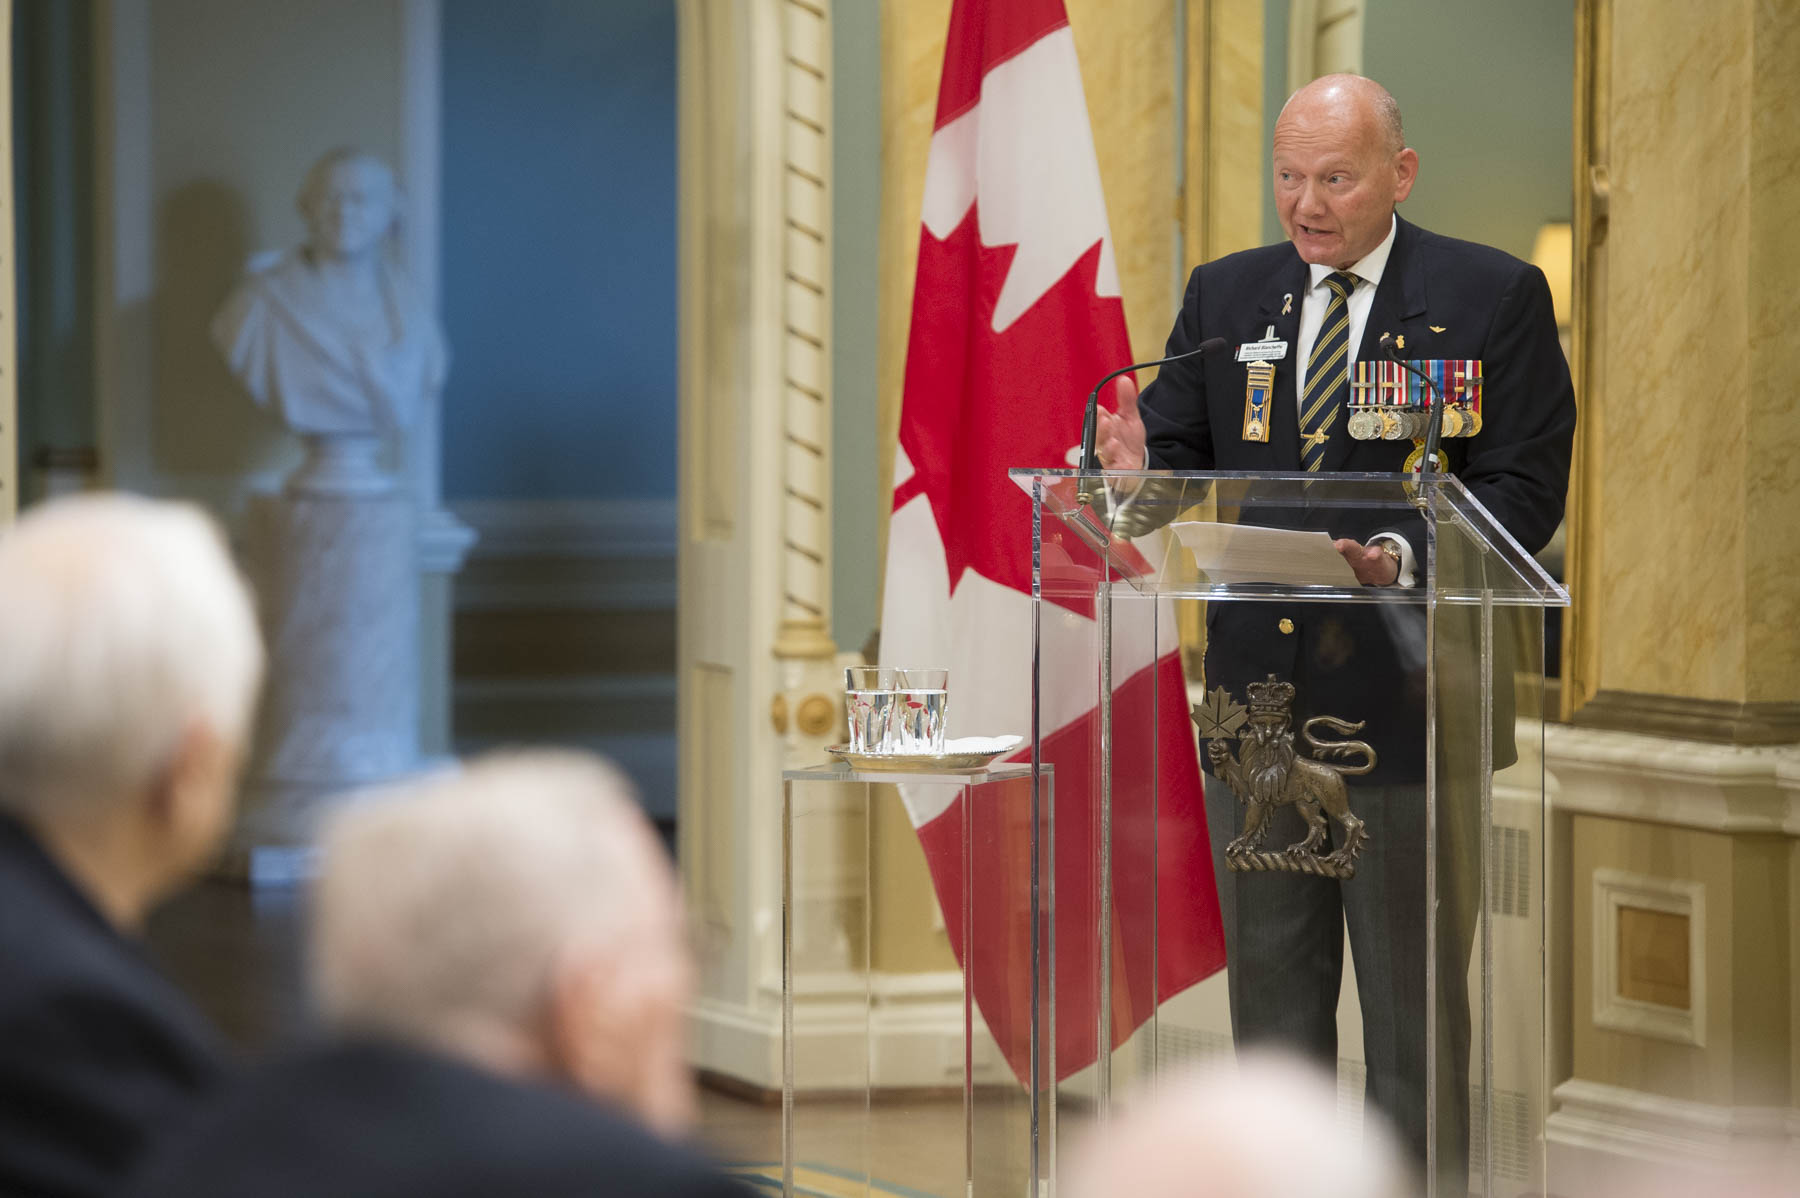 Major General (Ret'd) Richard Blanchette, Chairman, Defence and Security Committee for the Royal Canadian Legion, also delivered remarks.